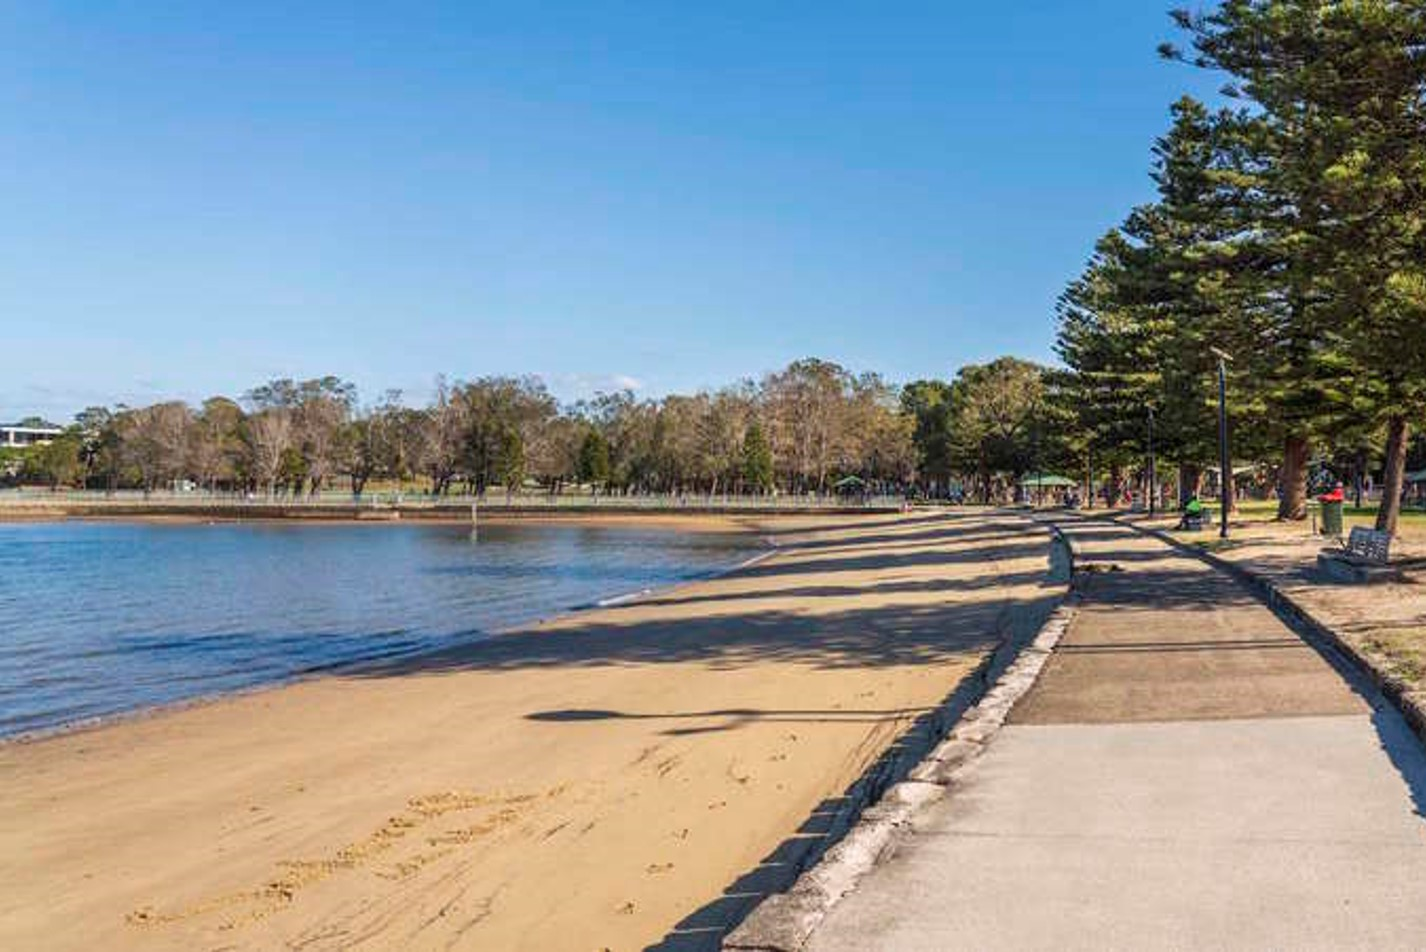 Go for a Rejuvenating Dip in the Georges River